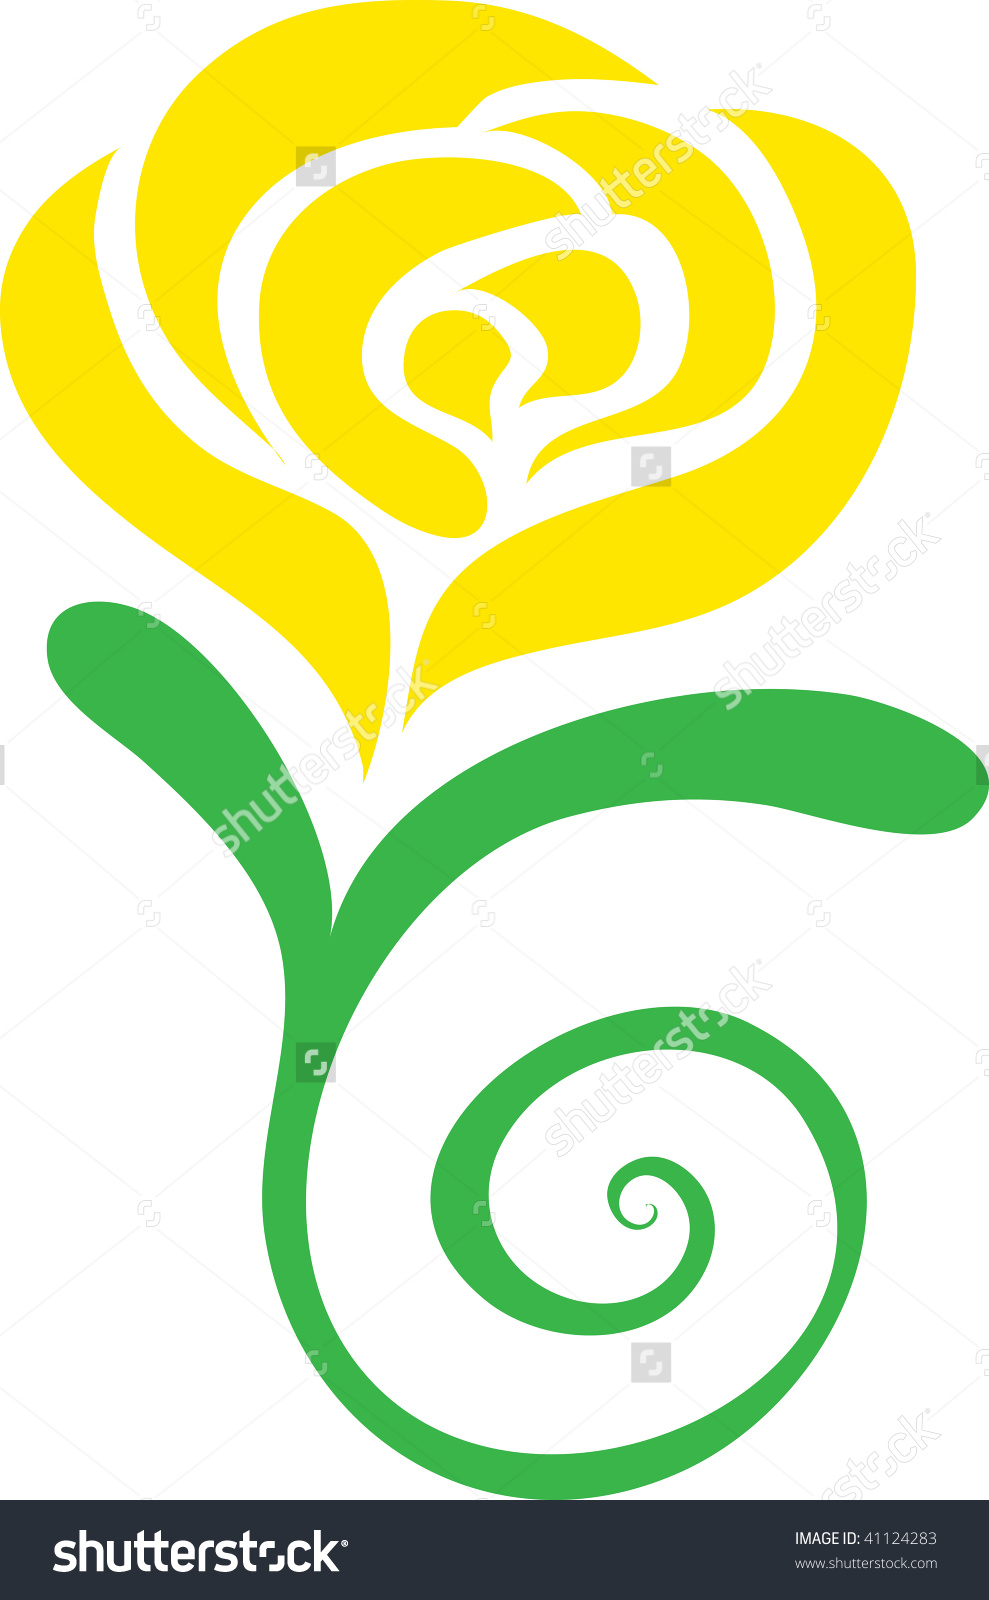 Yellow Rose clipart green rose Clip Download Clipart clip art